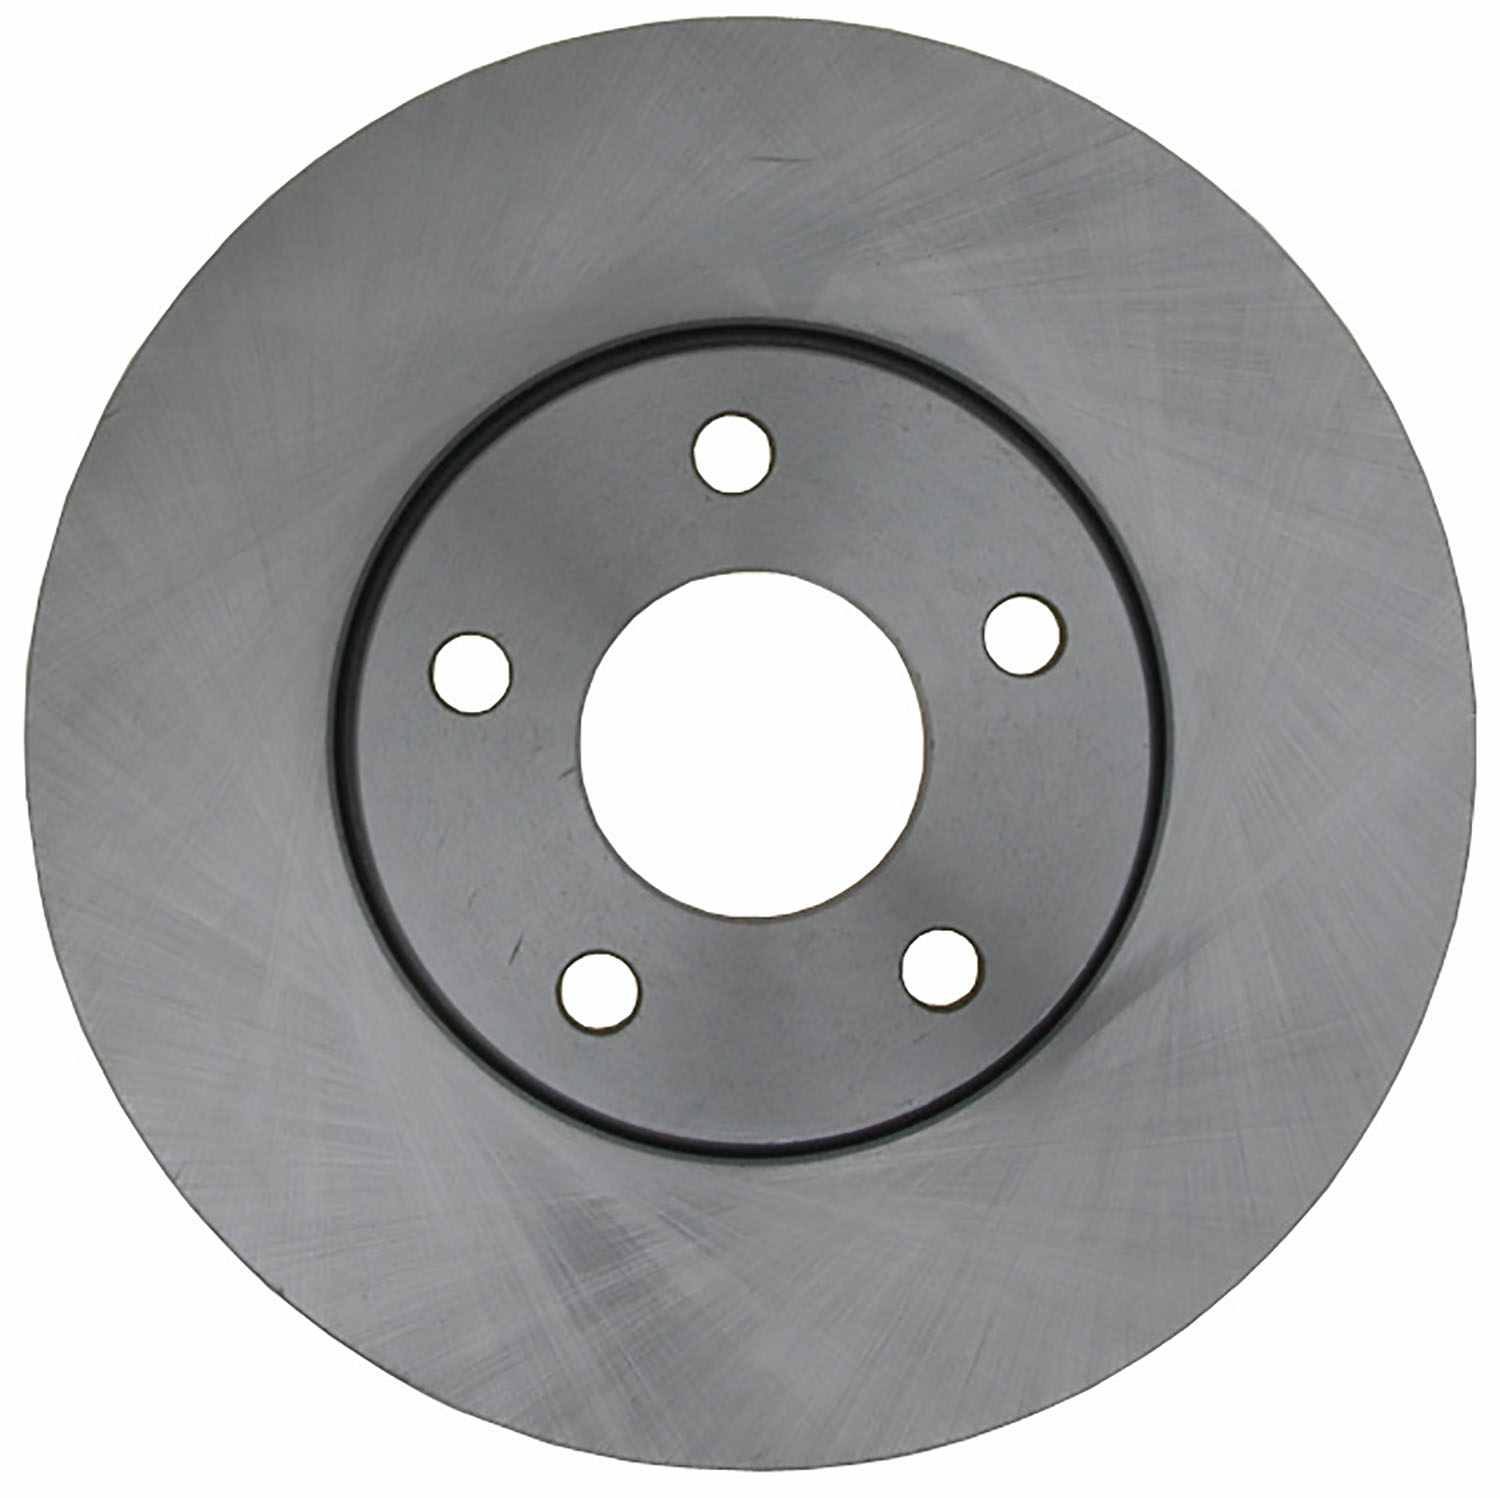 ACDELCO ADVANTAGE - Coated Disc Brake Rotor (Front) - DCD 18A2841AC